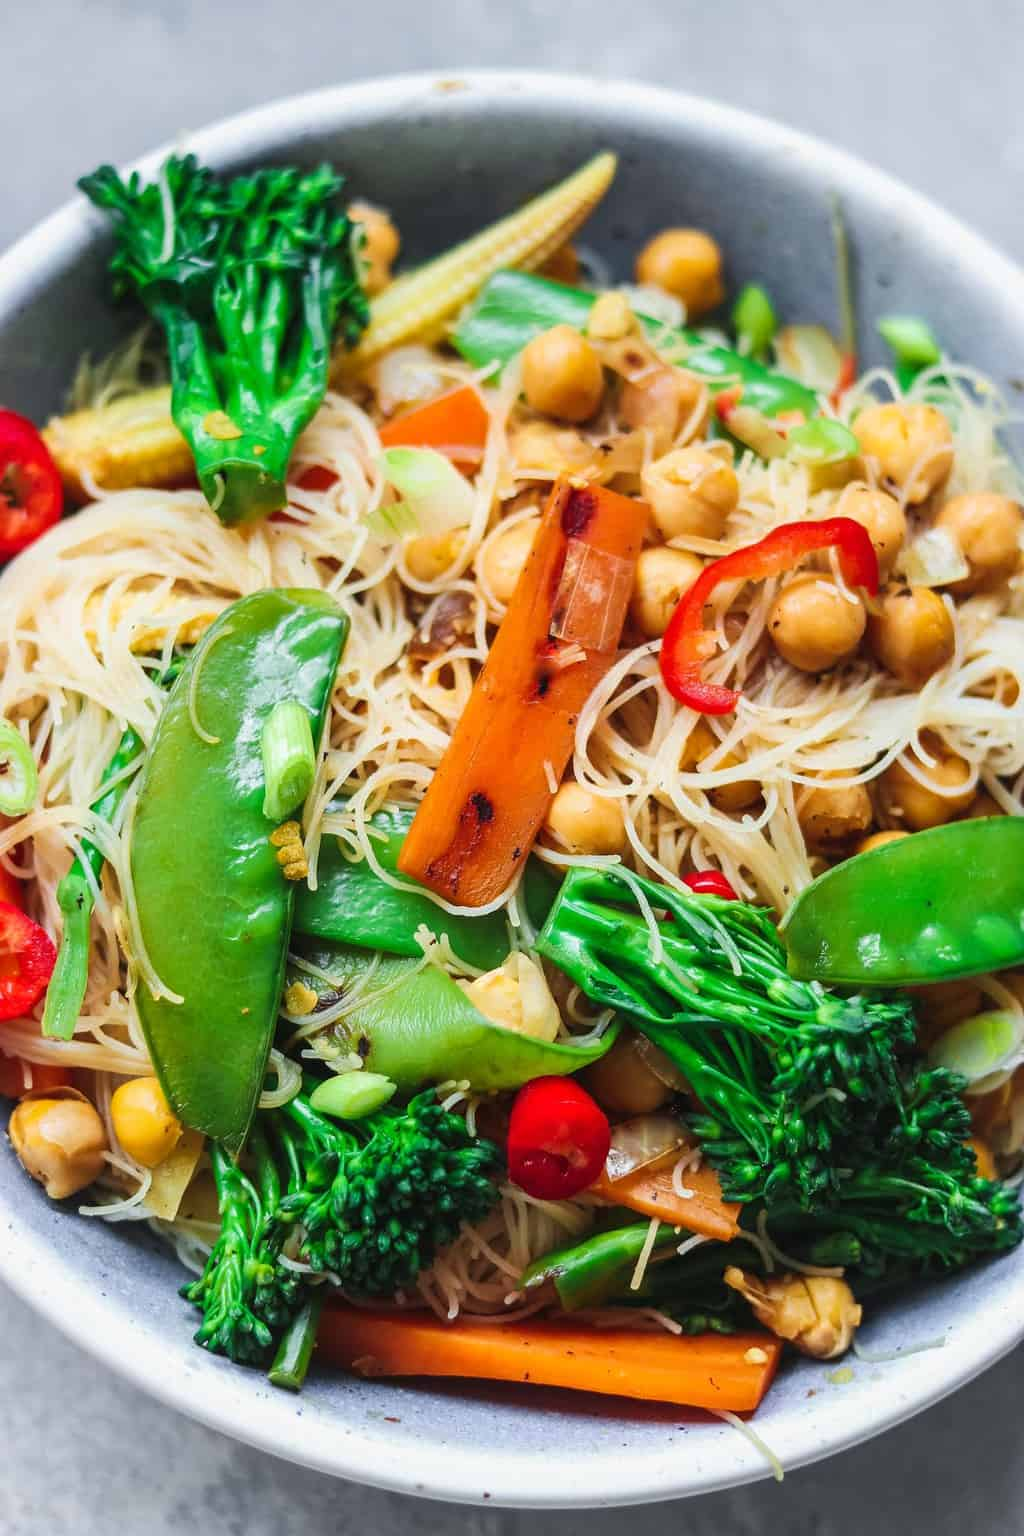 Vegan chickpea stir-fry with noodles and vegetables